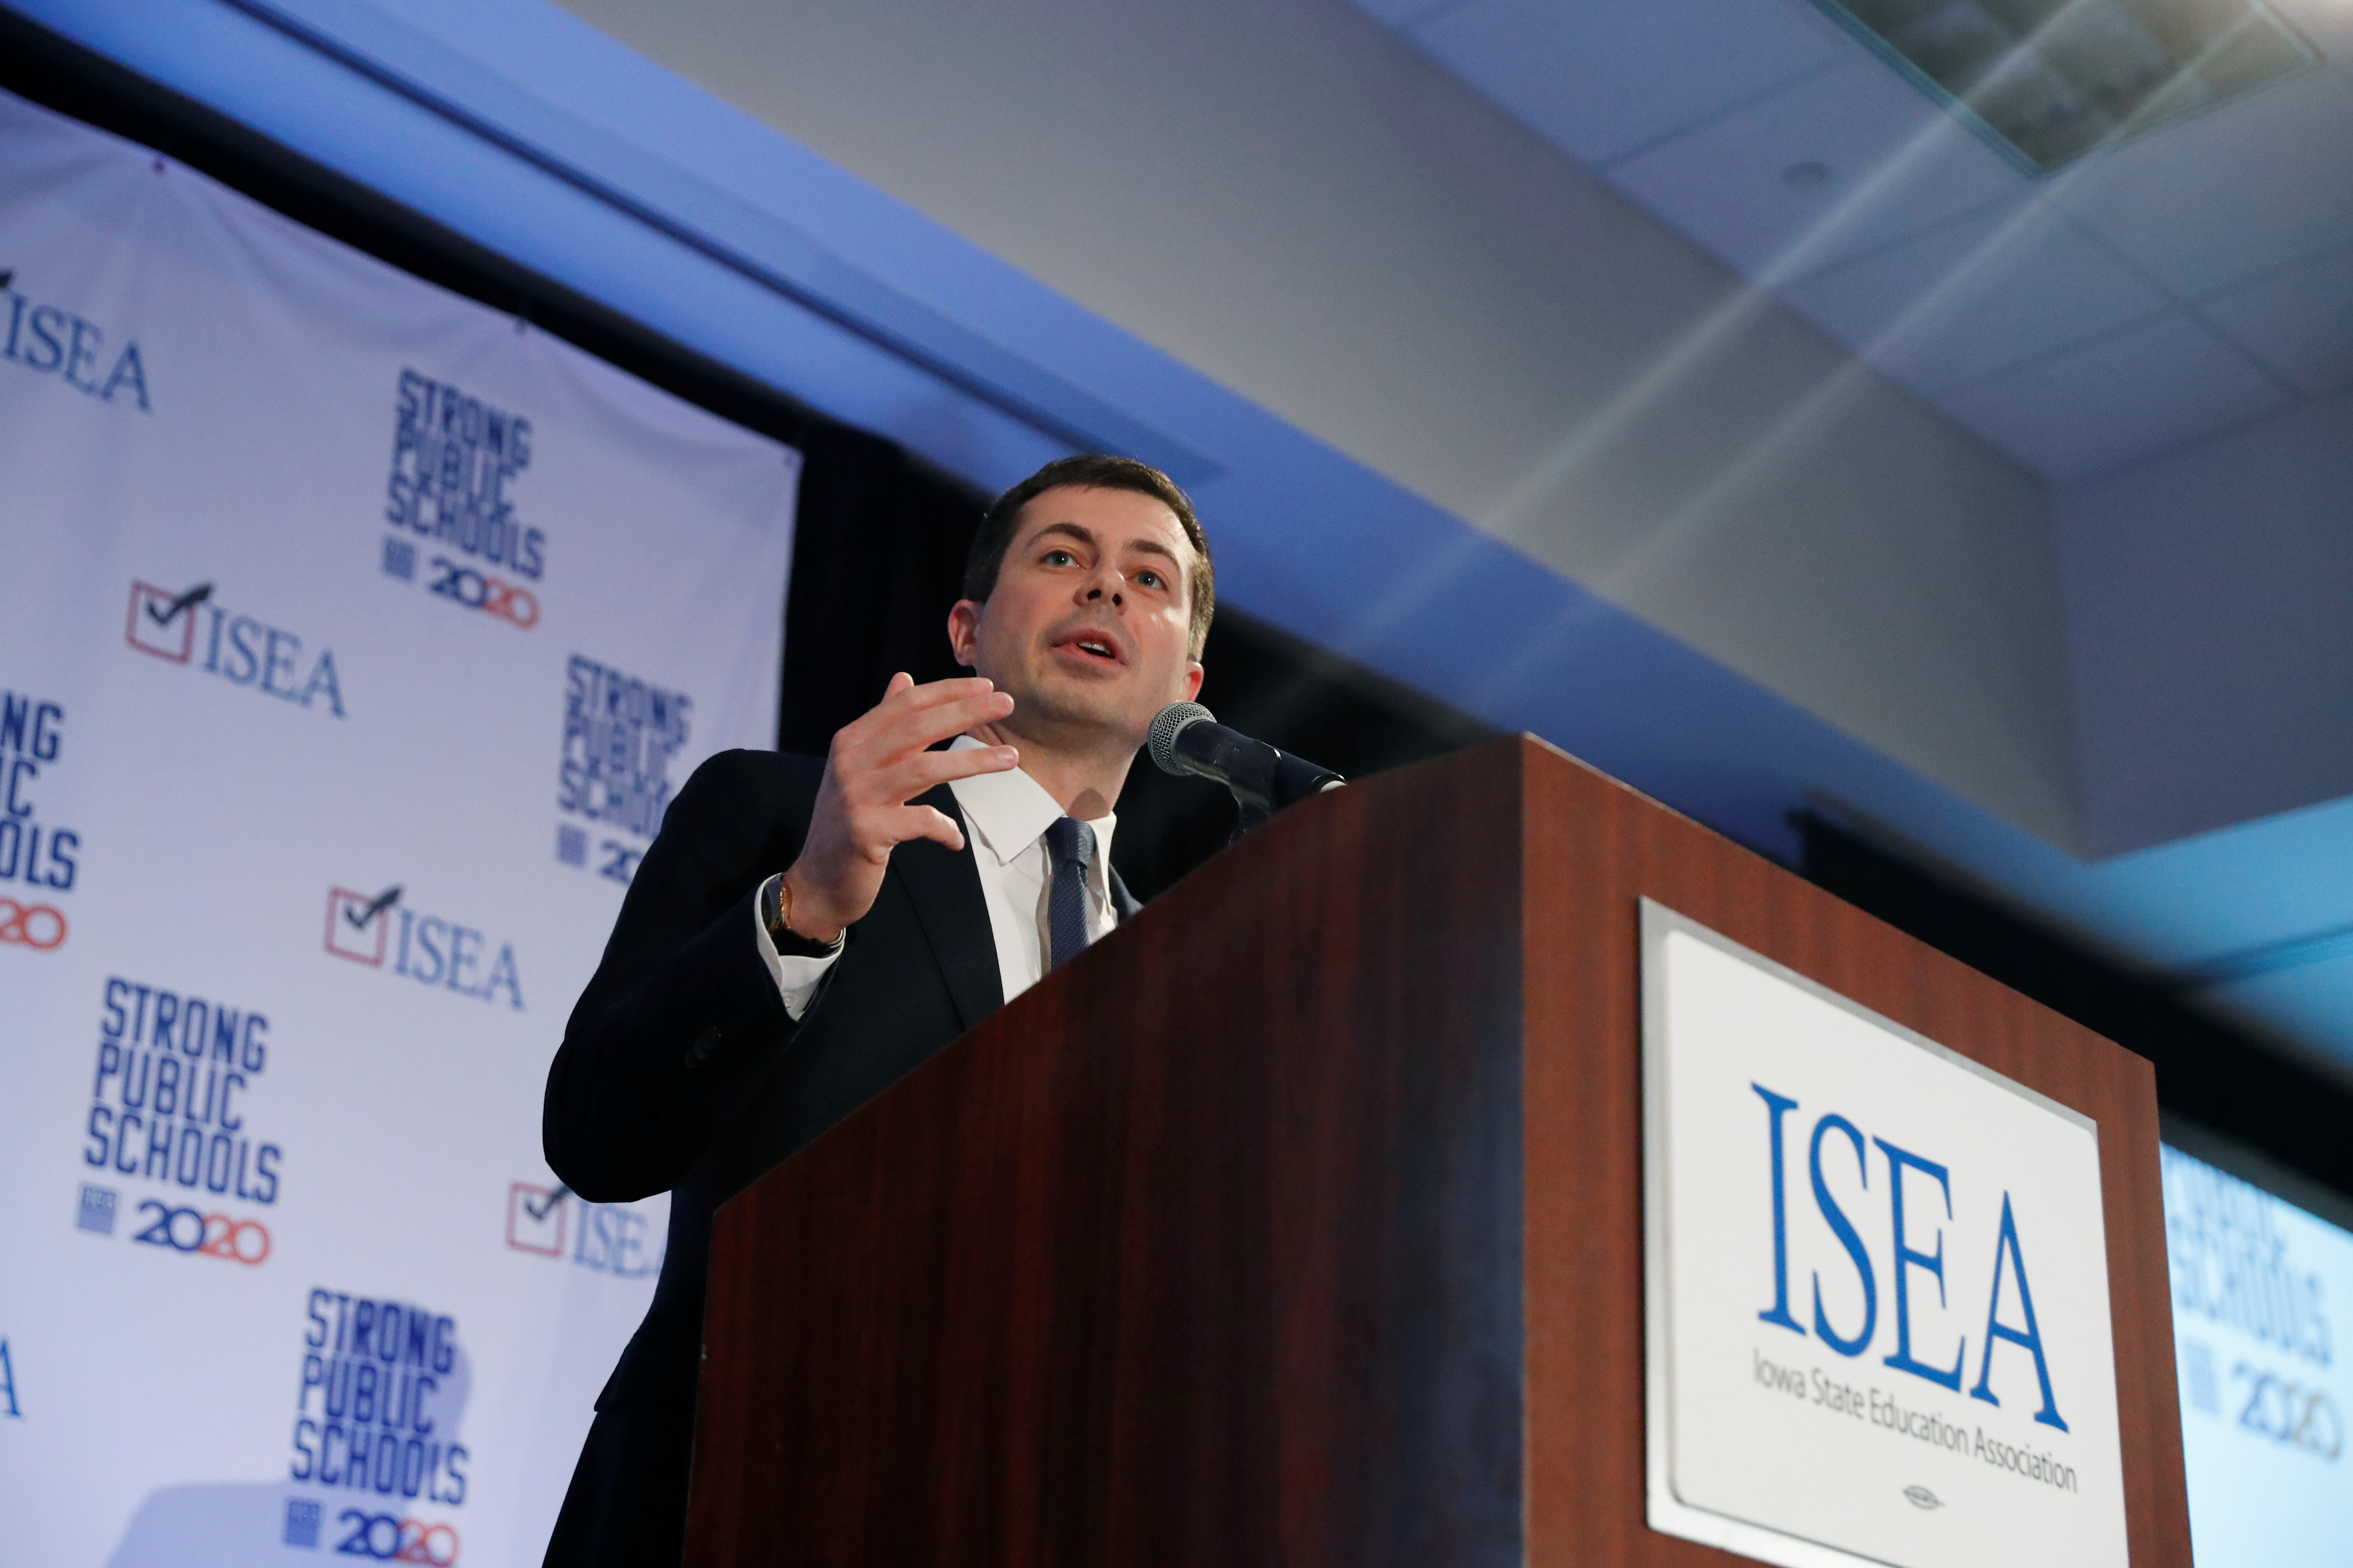 Democratic 2020 U.S. presidential candidate and former South Bend Mayor Pete Buttigieg speaks during the ISEA (Iowa State Education Association) 2020 Legislative Conference West Des Moines, Iowa, U.S., January 18, 2020. REUTERS/Shannon Stapleton